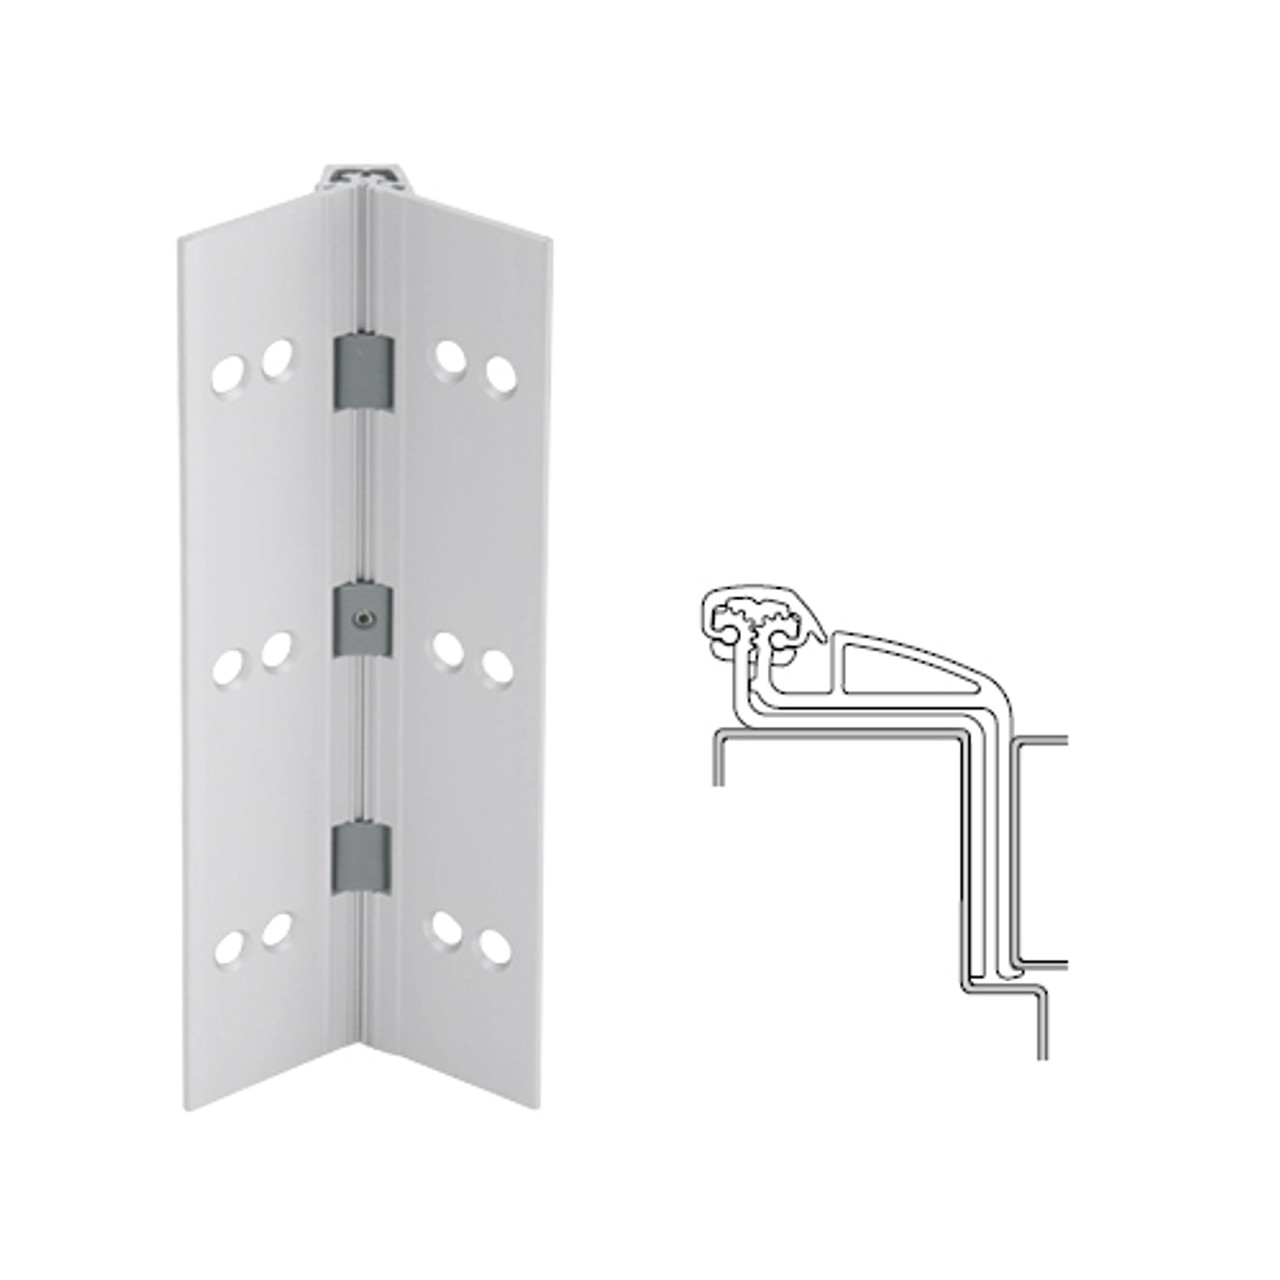 041XY-US28-120-SECWDHM IVES Full Mortise Continuous Geared Hinges with Security Screws - Hex Pin Drive in Satin Aluminum